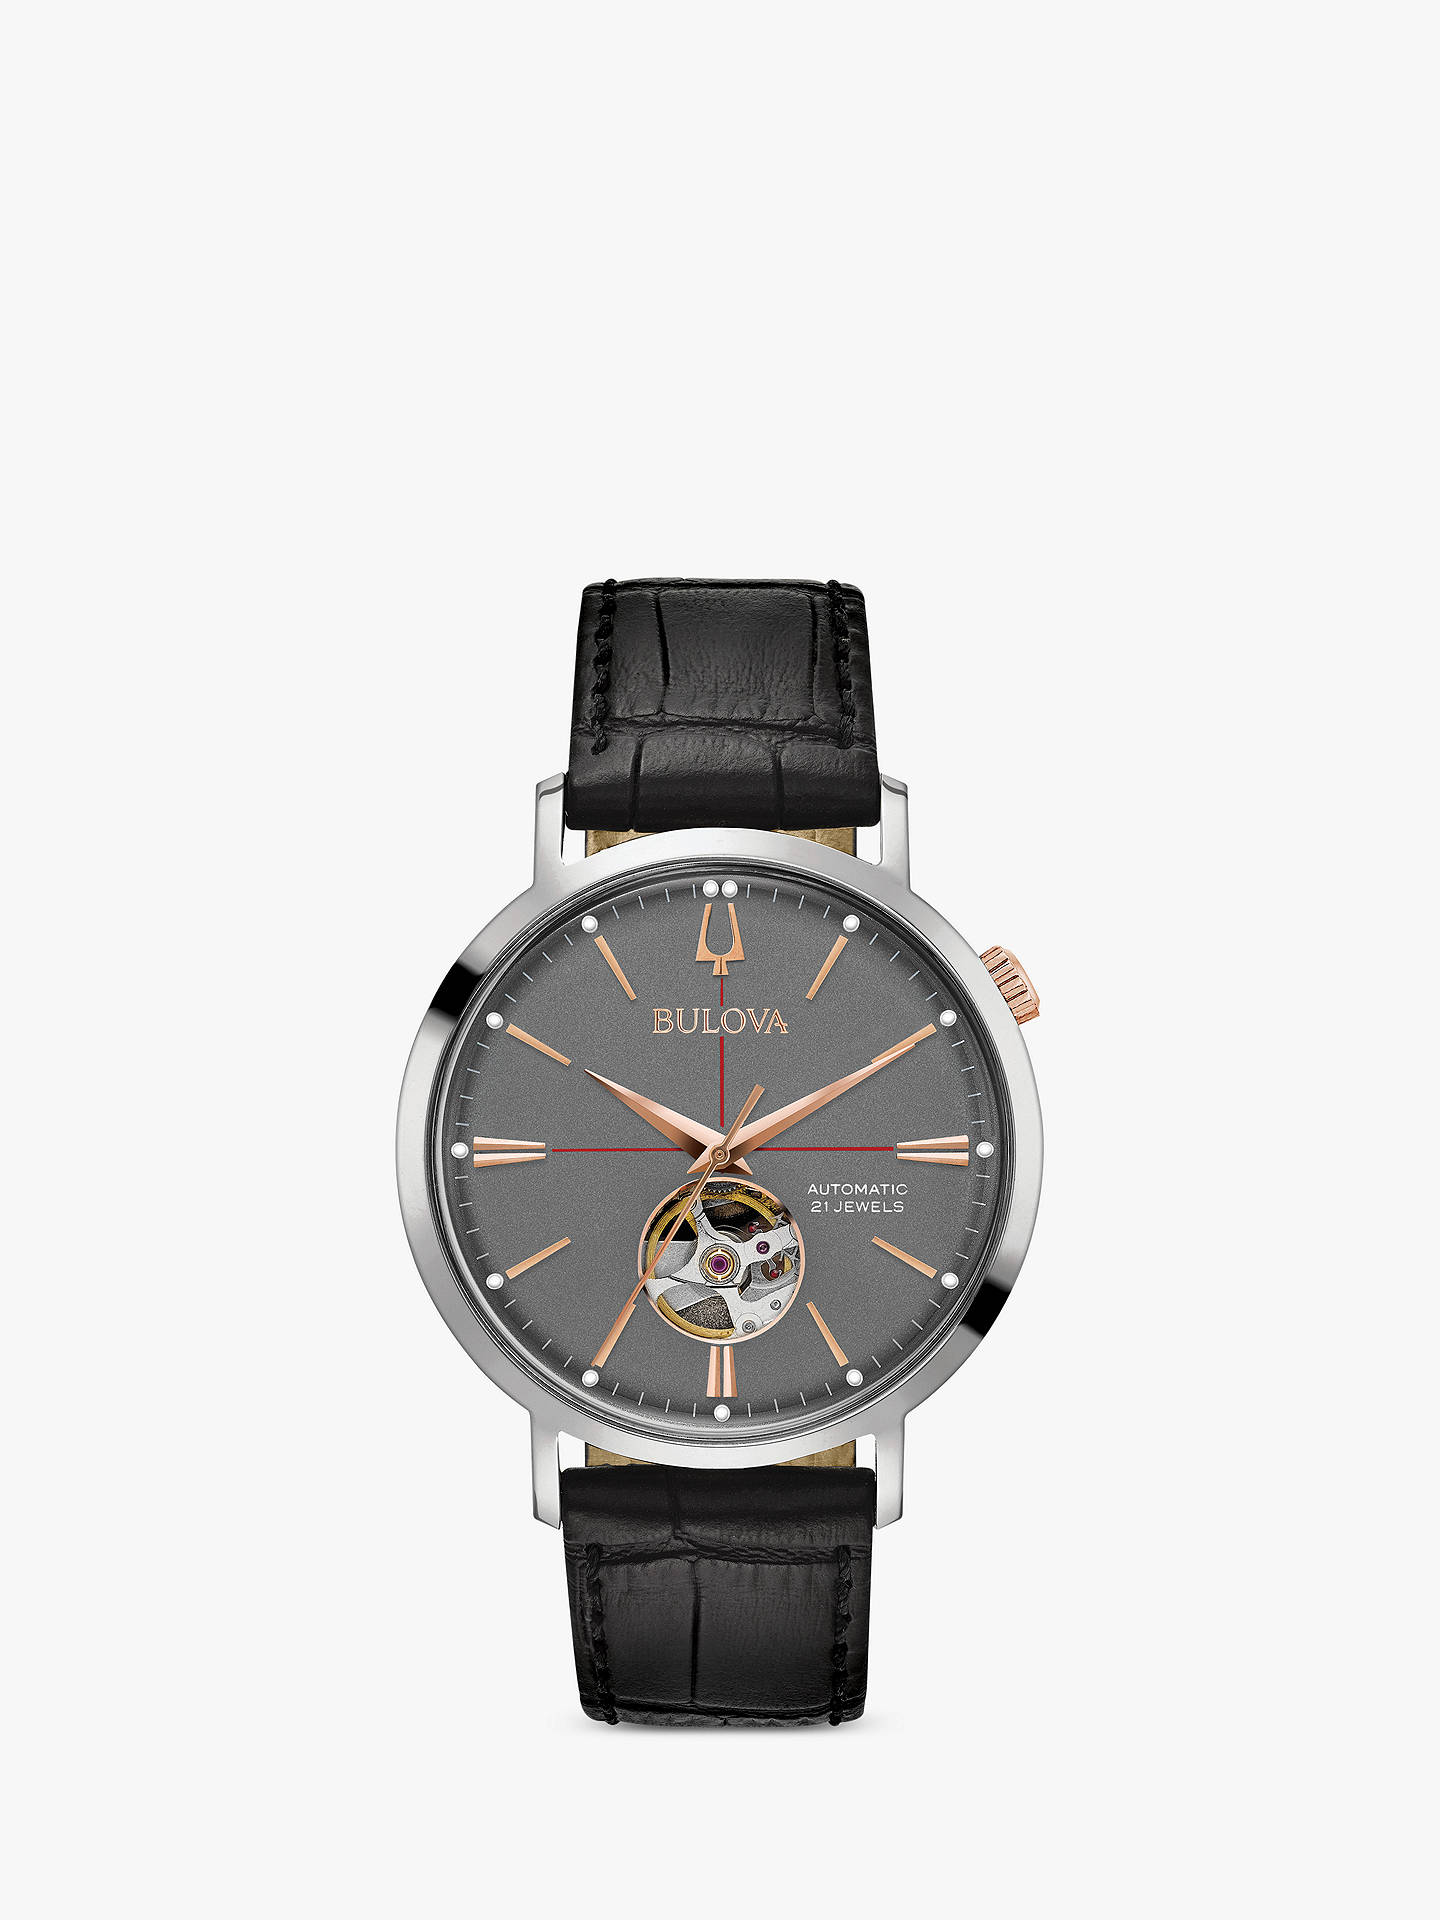 44415ccc1 Buy Bulova Men's Classic Automatic Heartbeat Leather Strap Watch,  Black/Grey 98A187 Online at ...